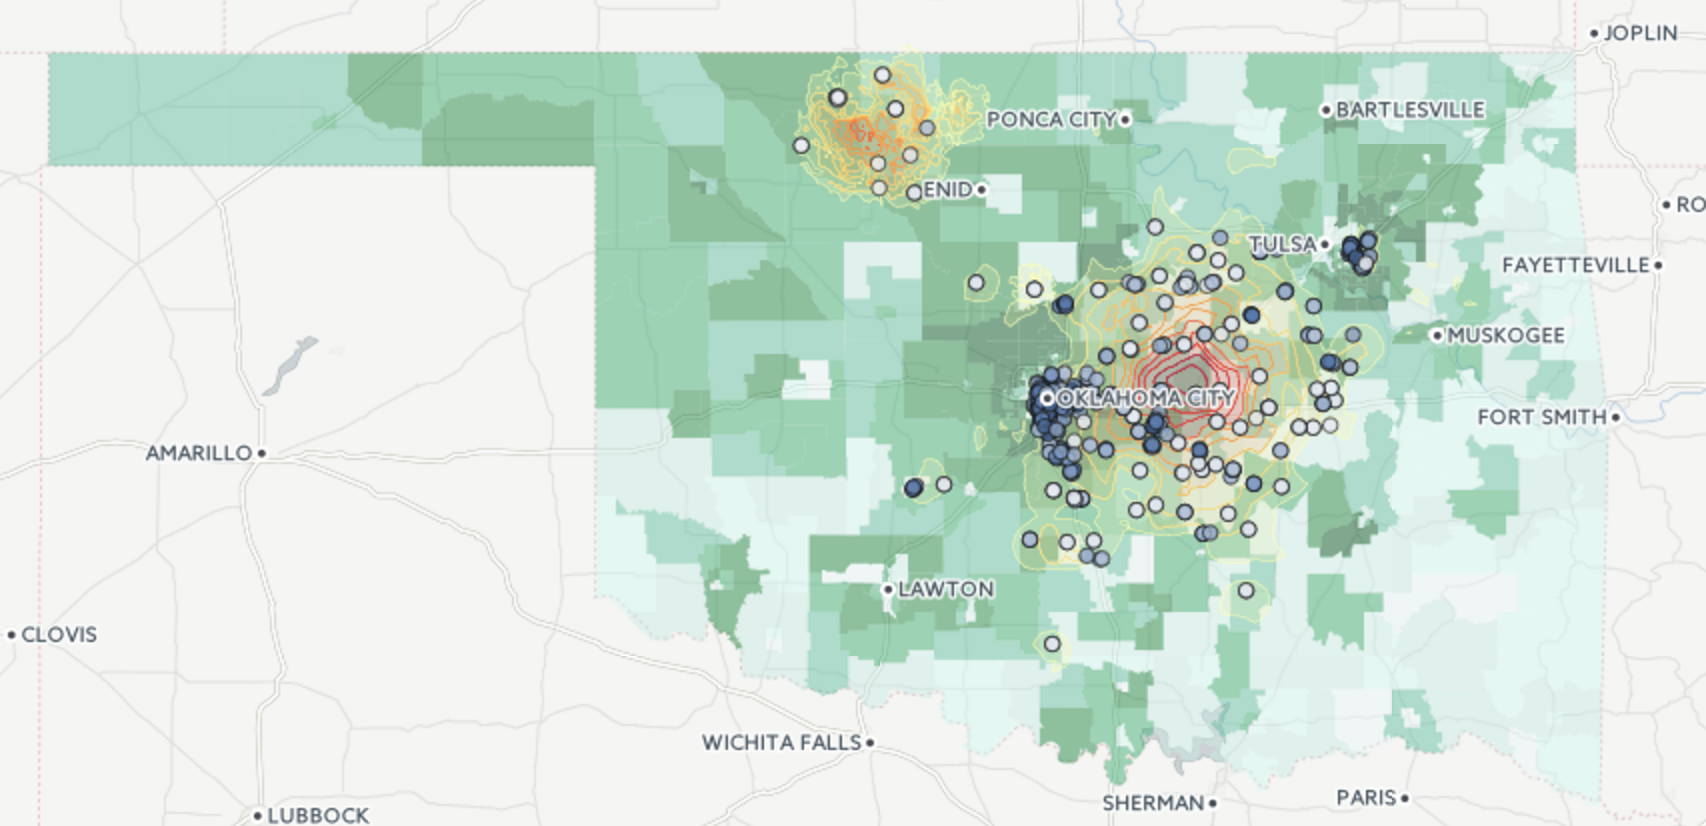 image Using PostGIS, SQL, and CartoDB to identify schools at risk from Oklahoma's earthquakes